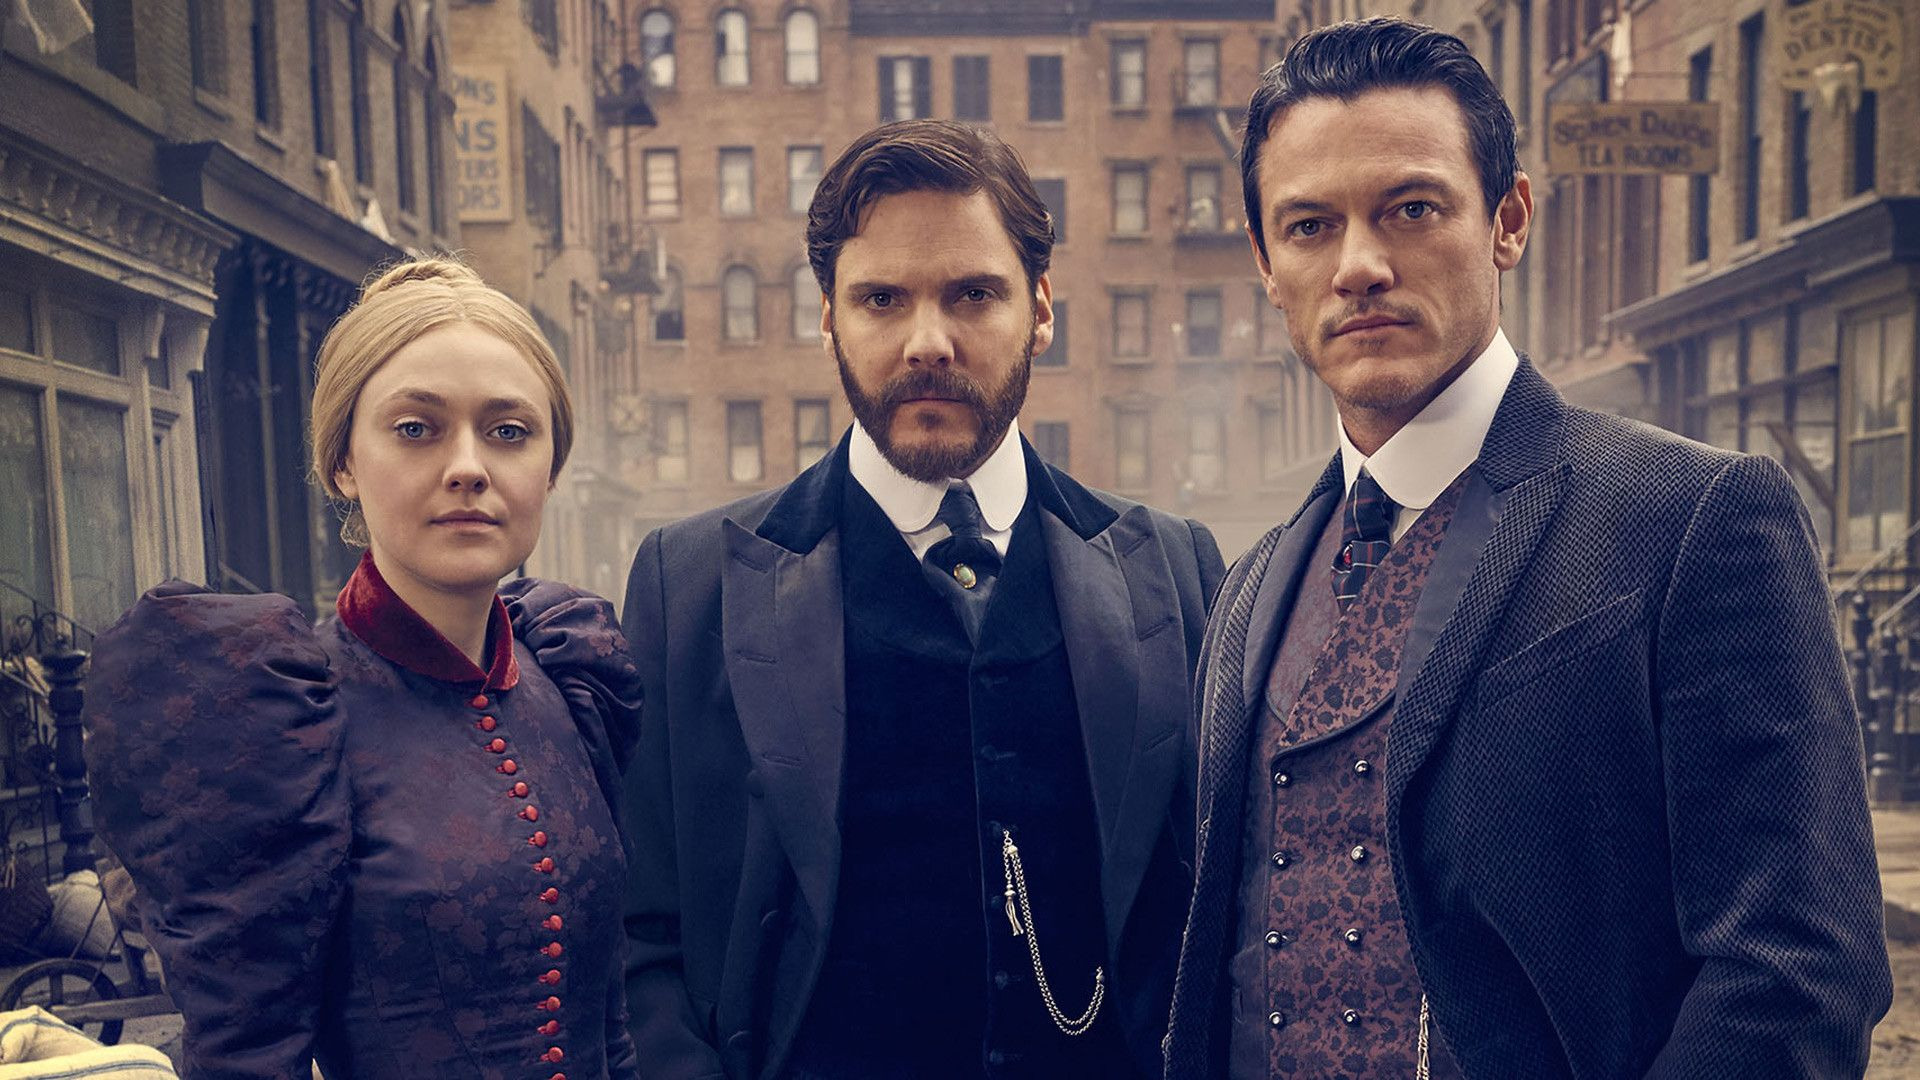 Show The Alienist